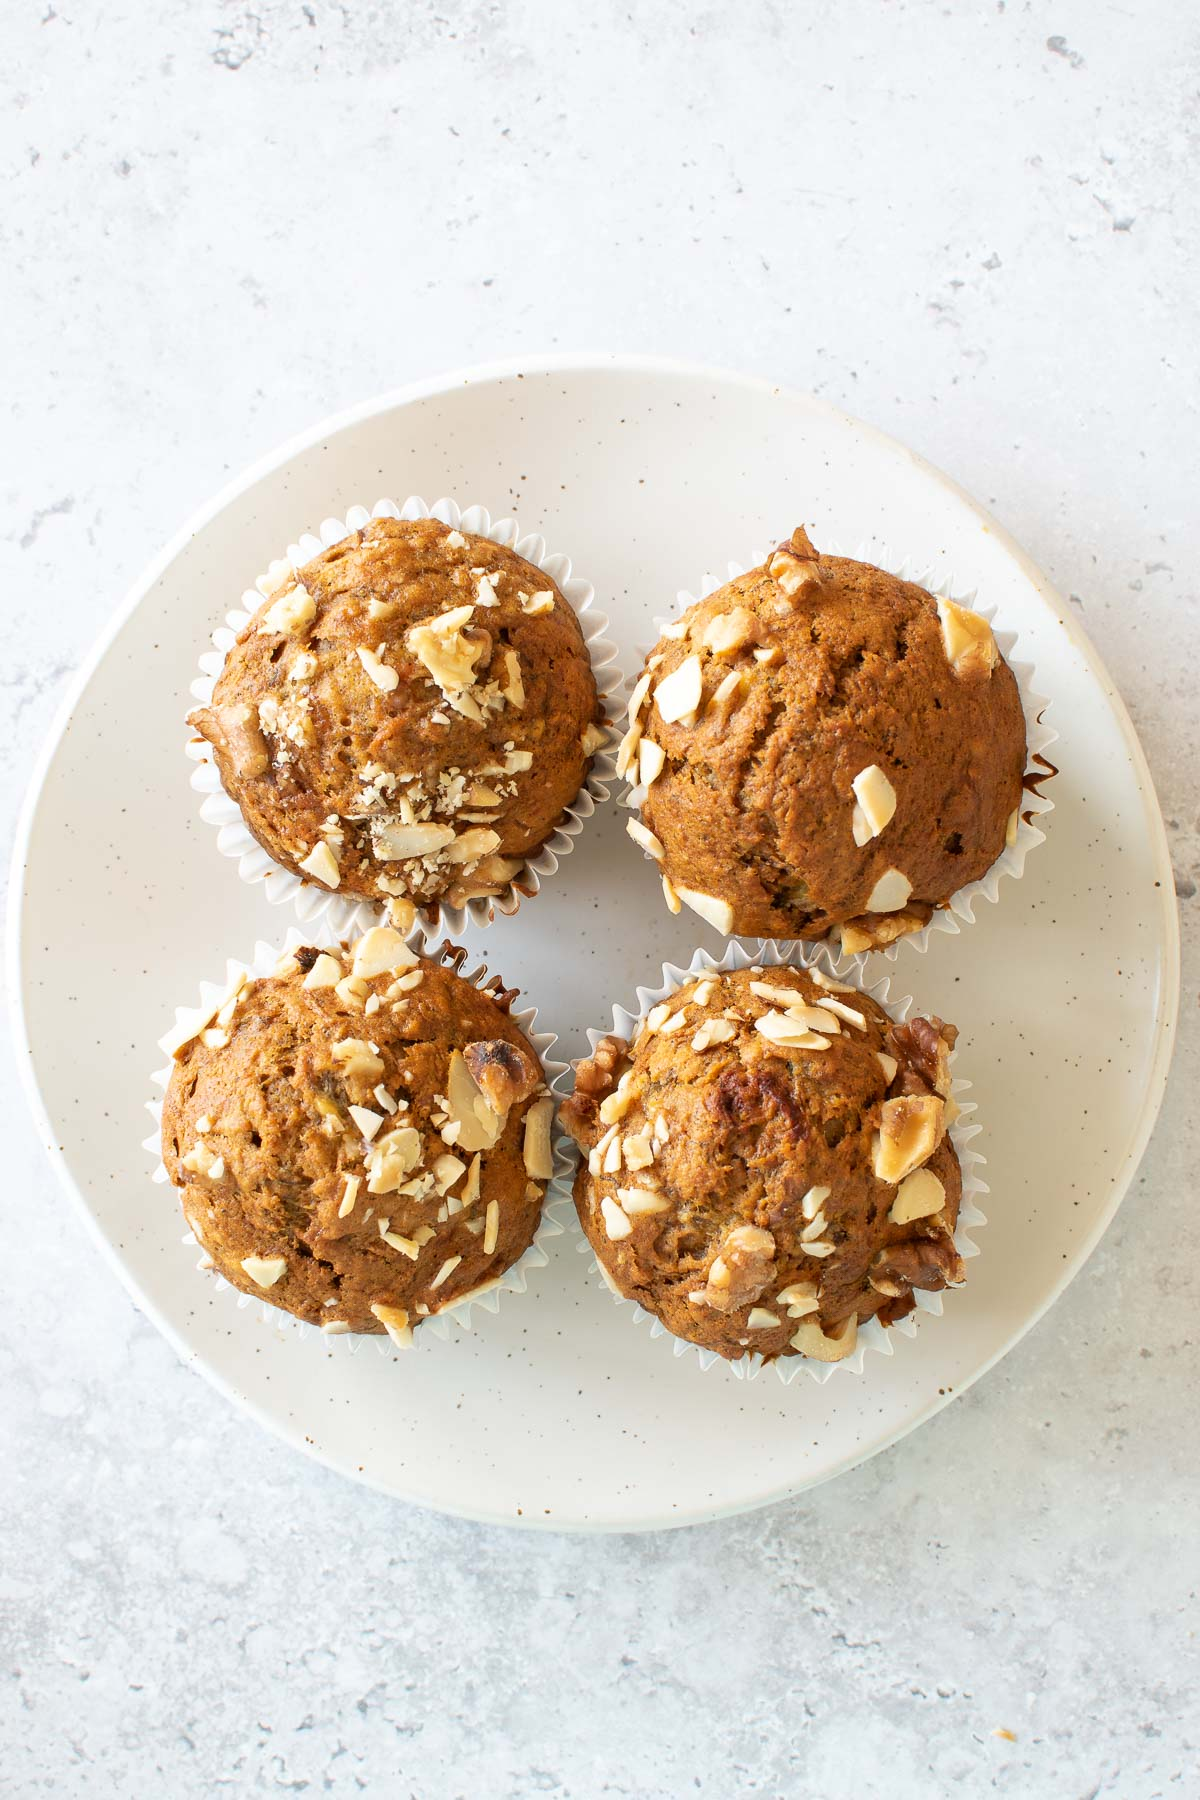 Four muffins with banana and carrots on a plate.